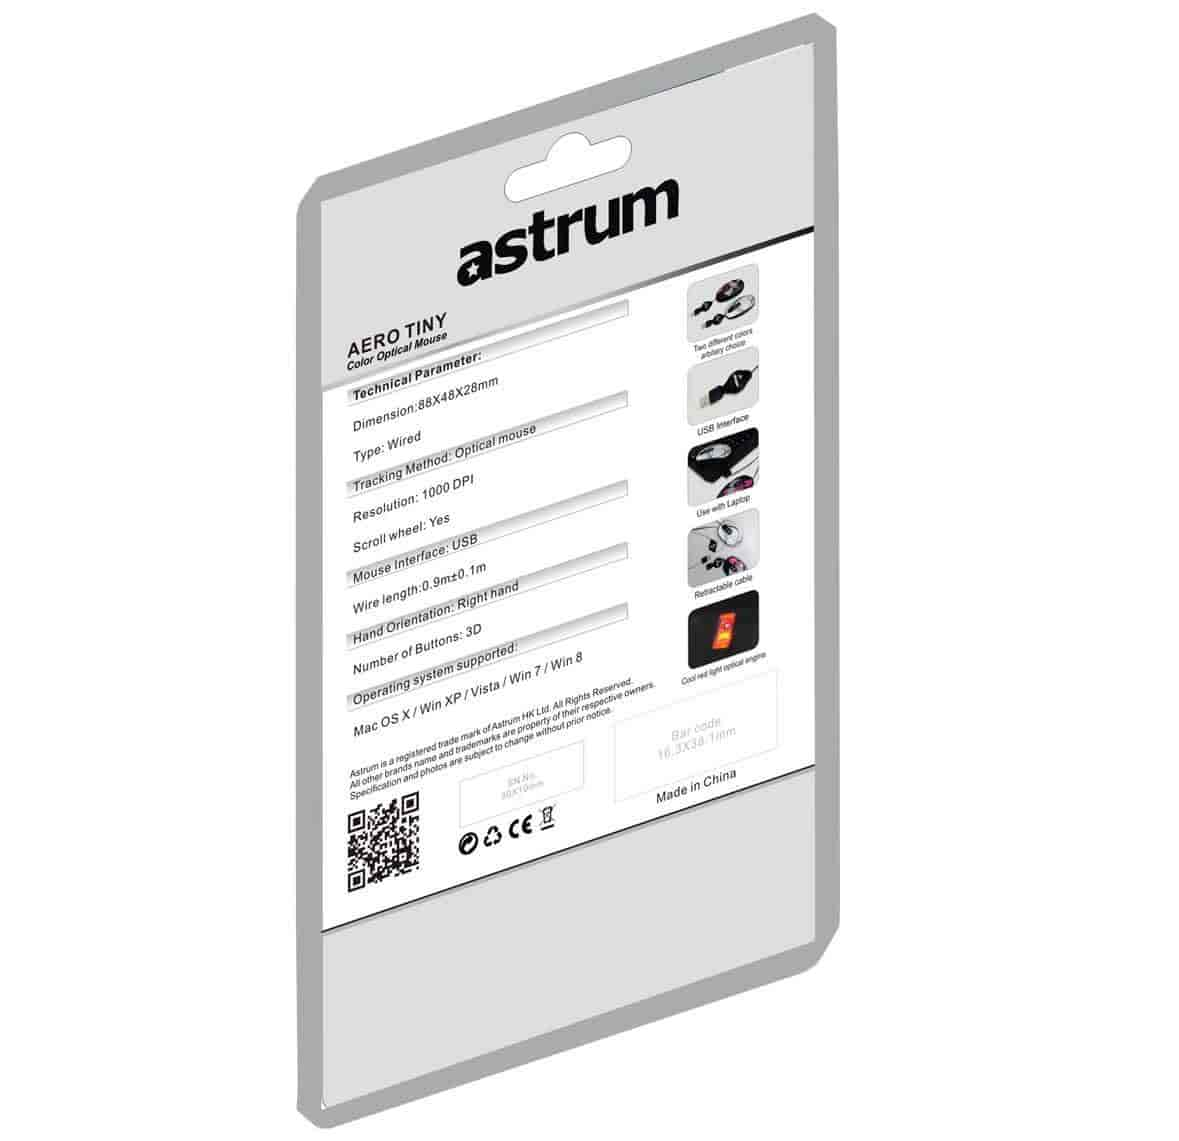 Buy Astrum Aero Tiny Gr Usb Retractable Notebook Mouse 800dpi Hd Optical 800 Dpi Lens